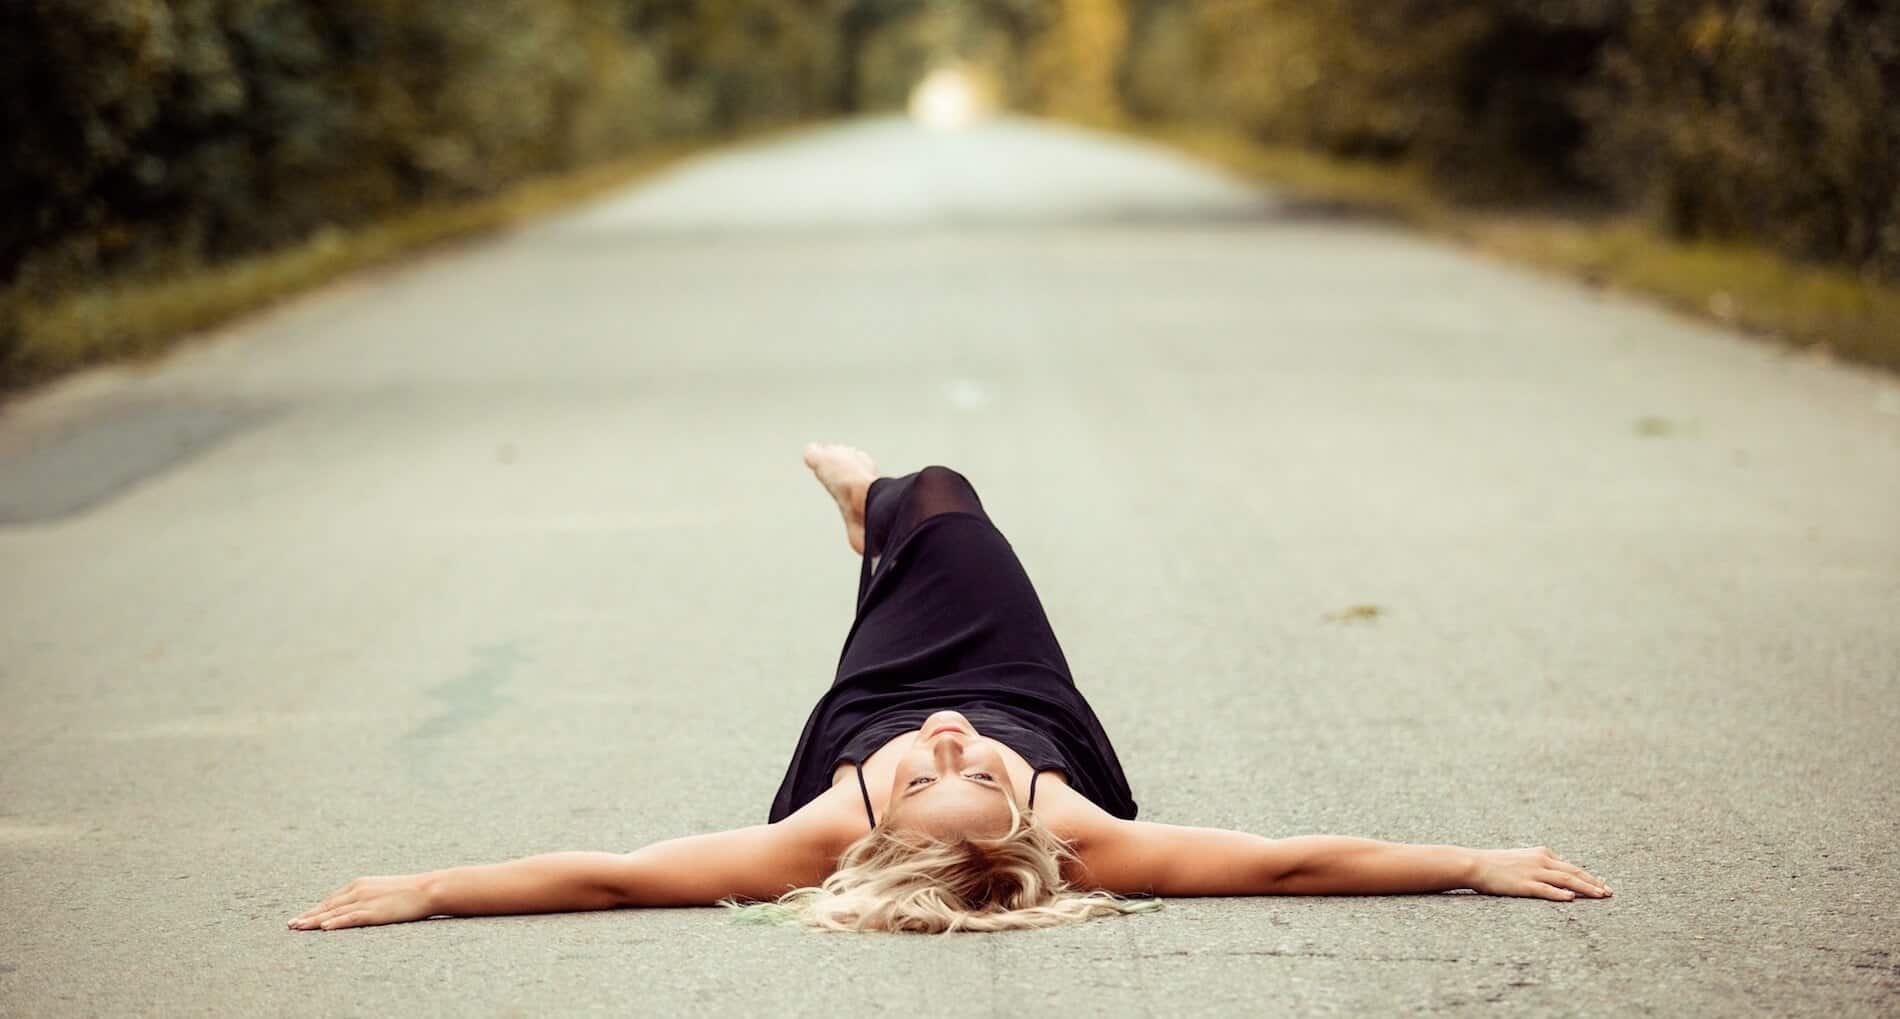 stressed girl relaxing in road